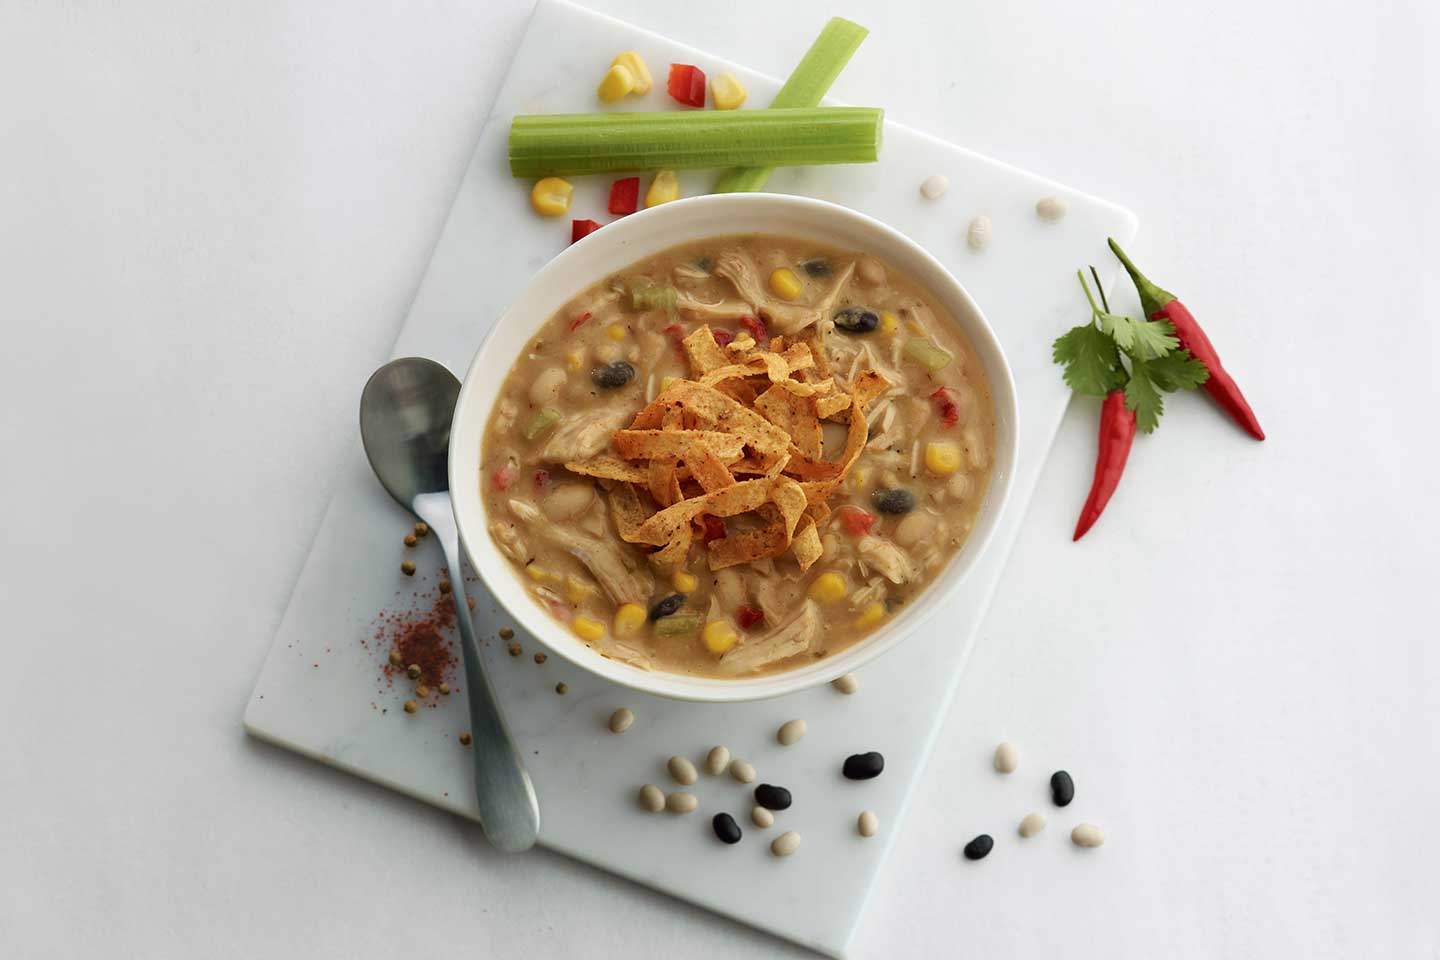 Bowl of Chick-fil-A Chicken Tortilla Soup surrounded by beans, corn, celery and a spoon.